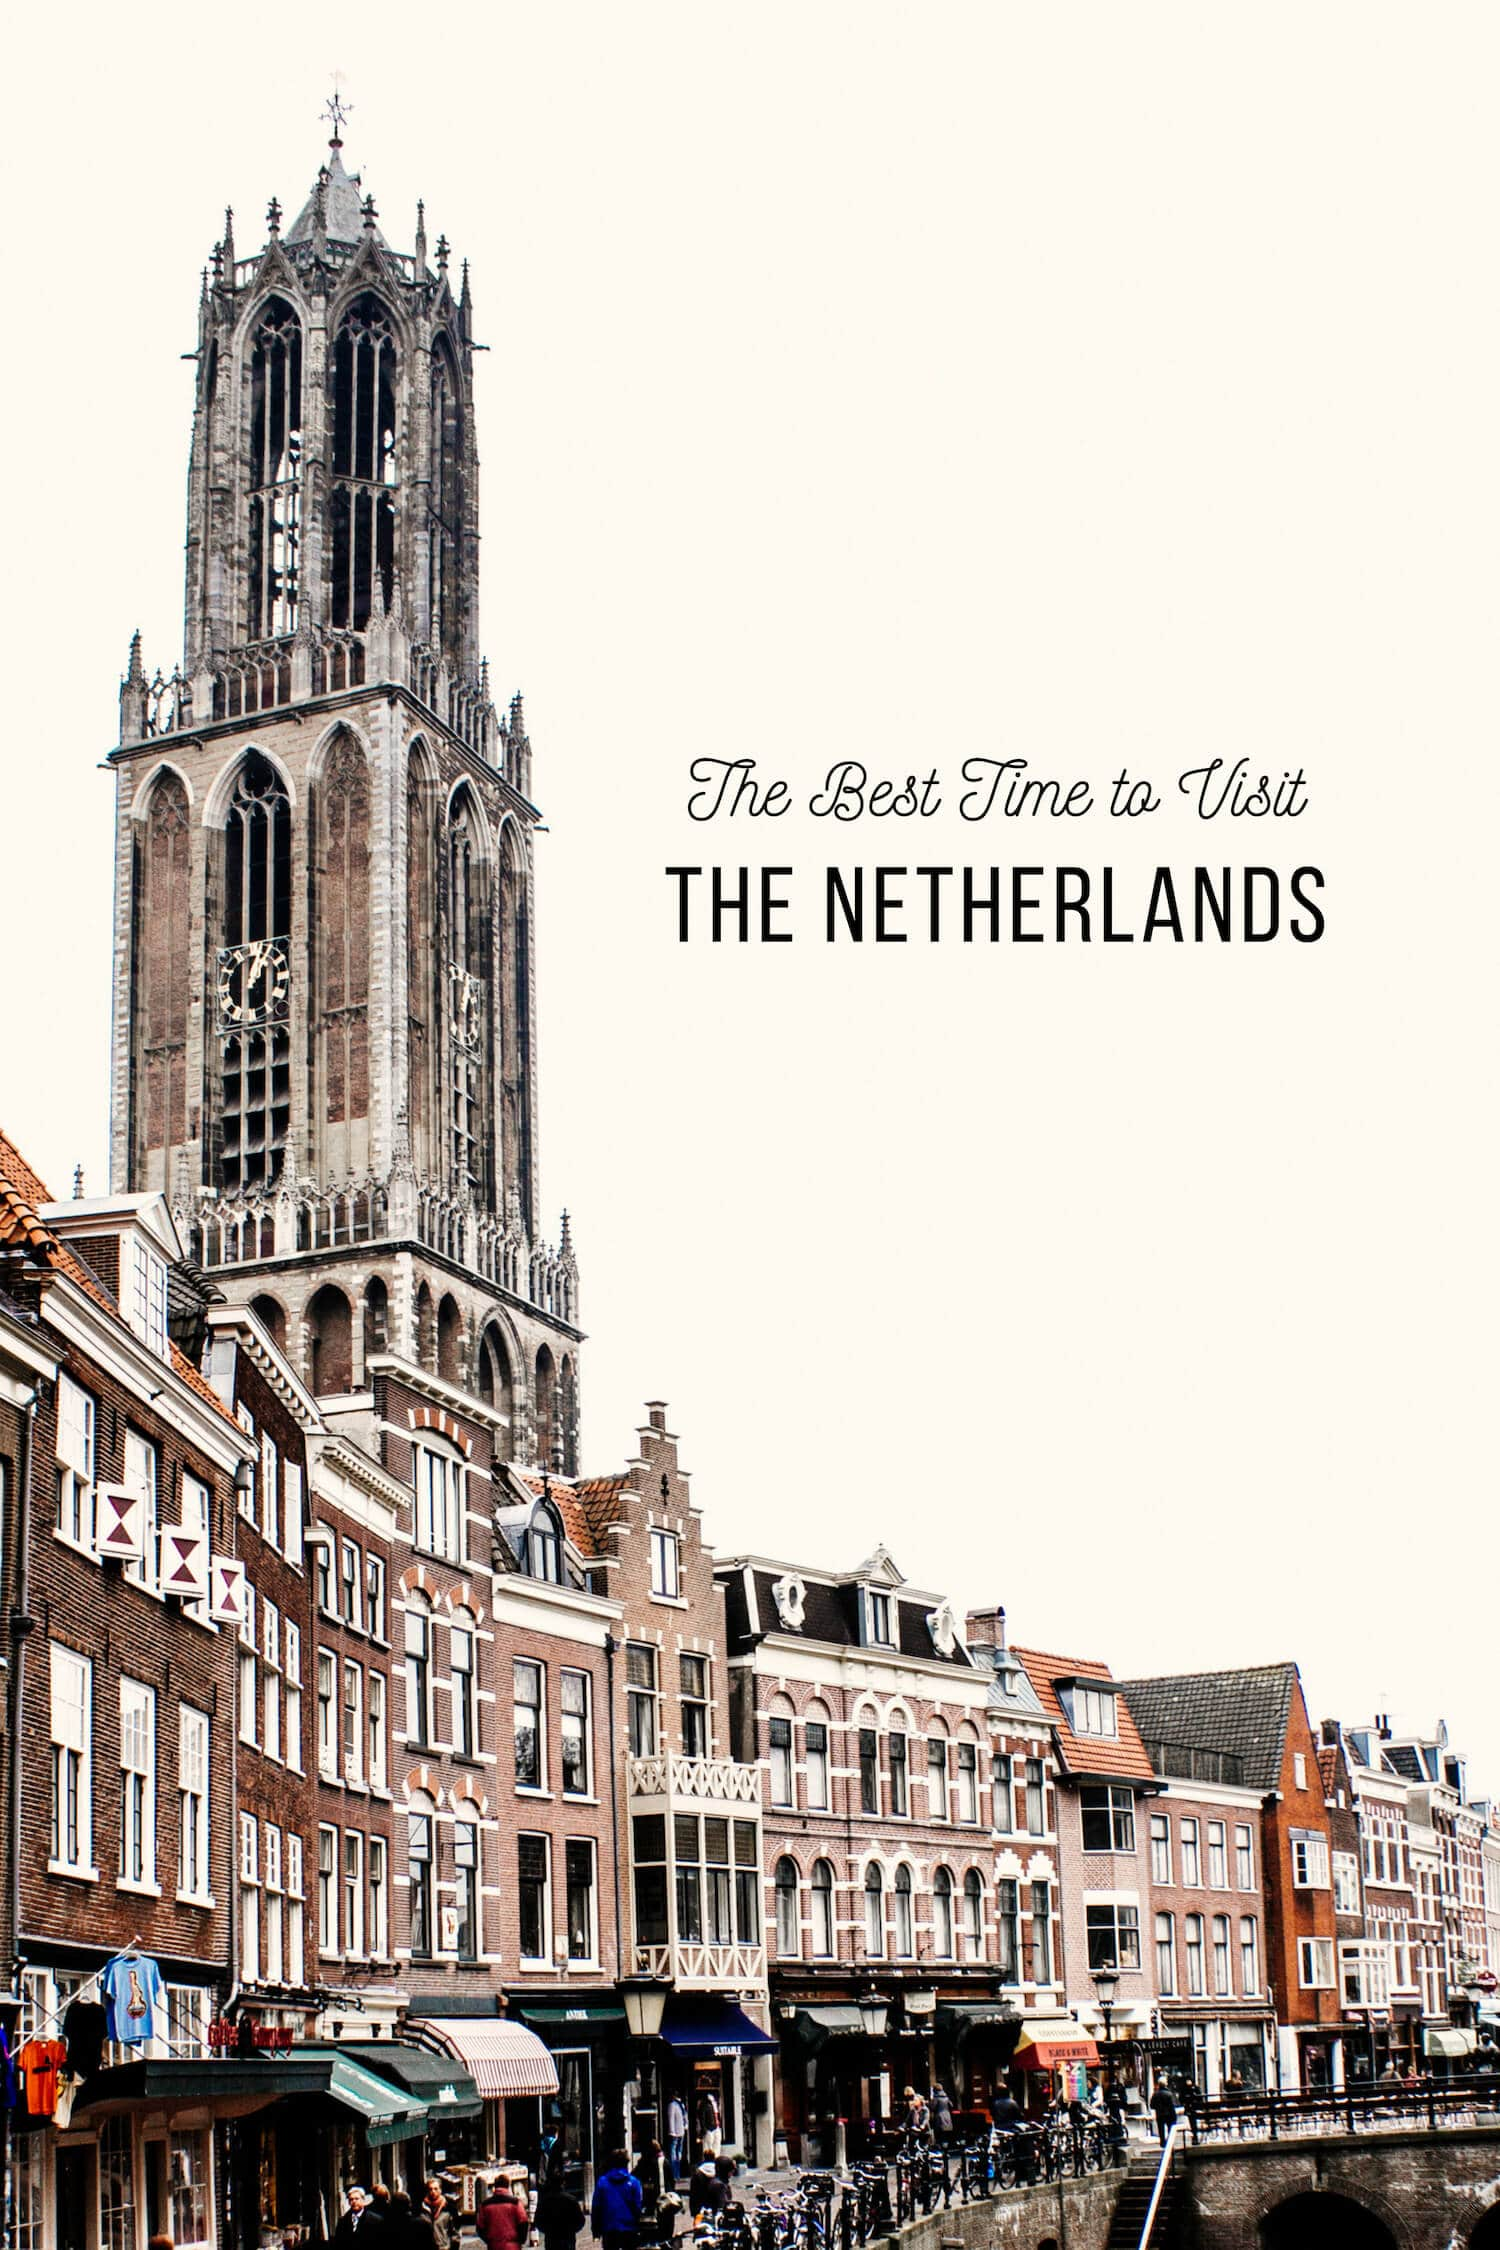 The Best Time to Visit the Netherlands